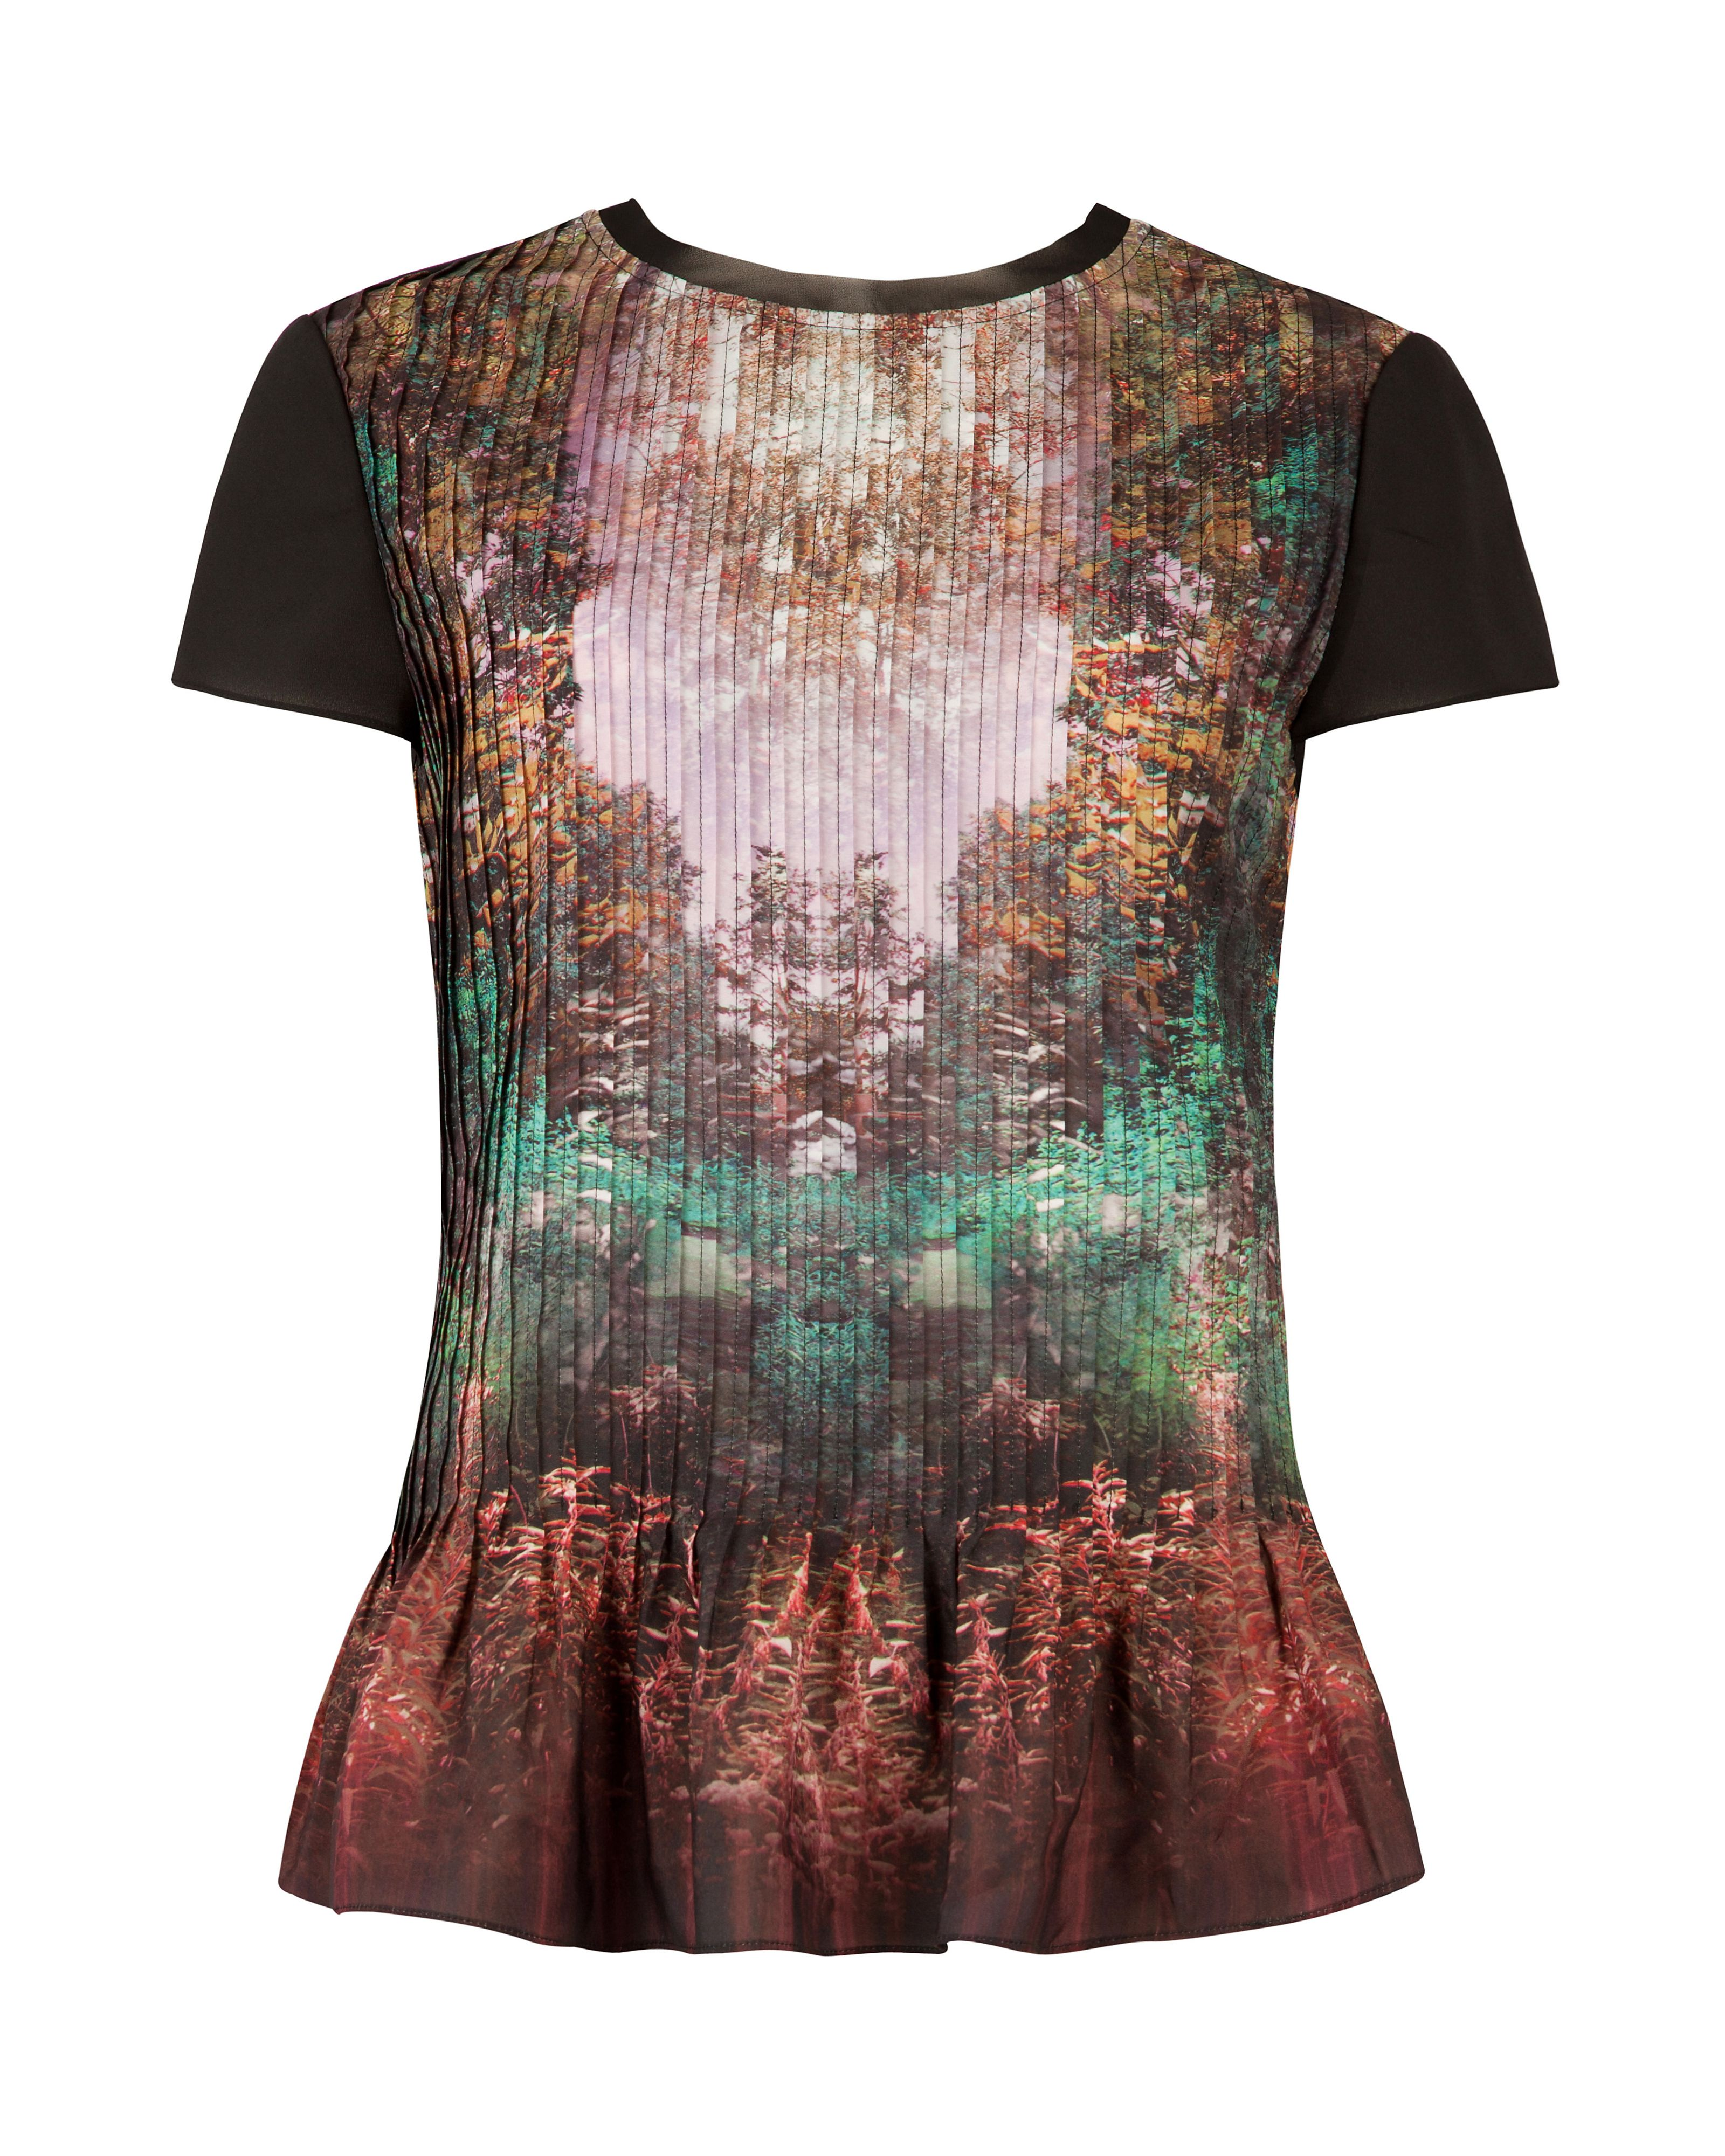 Esmy Magical mist print top